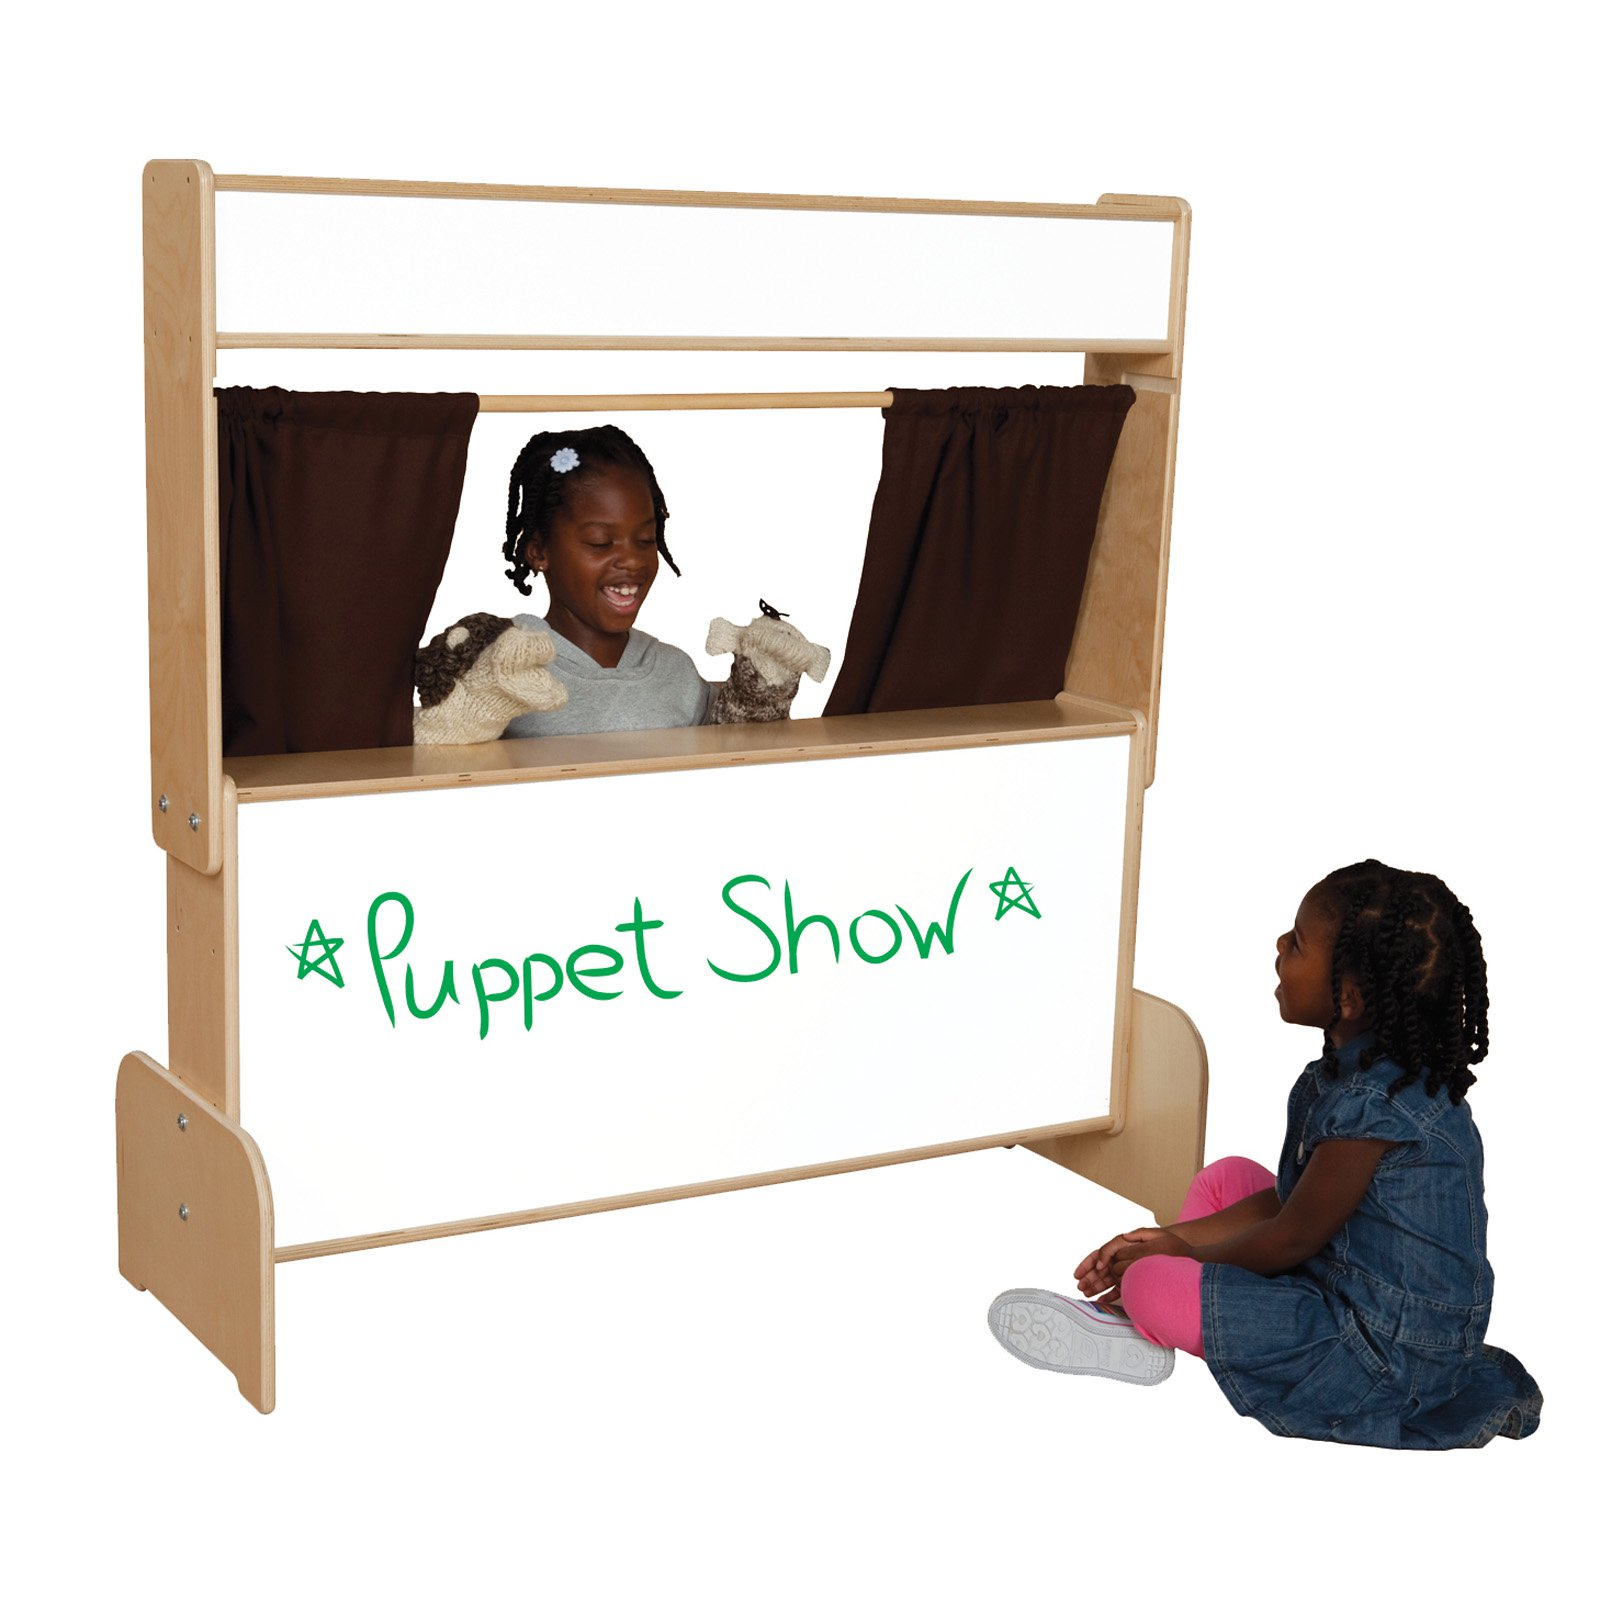 Wood Designs 21651BN Markerboard Puppet Theater With Brown Curtains